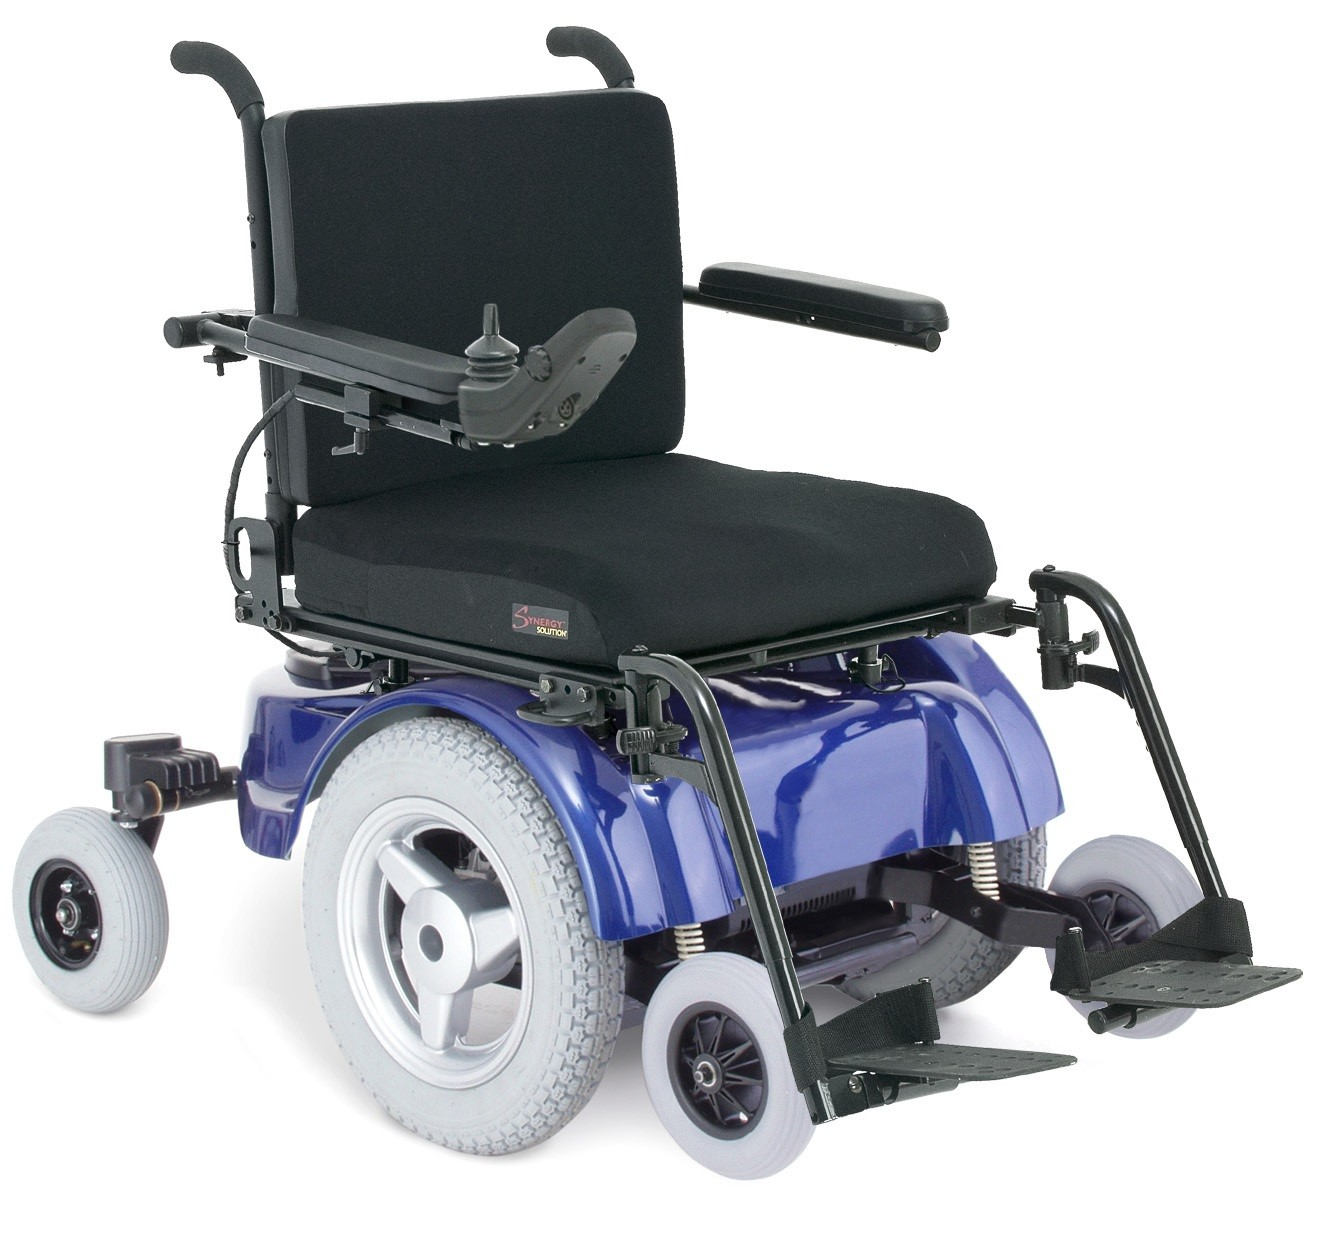 wheel chair batteries the factory pride mobility jazzy 1420 2hd power wheelchair battery sp12 75